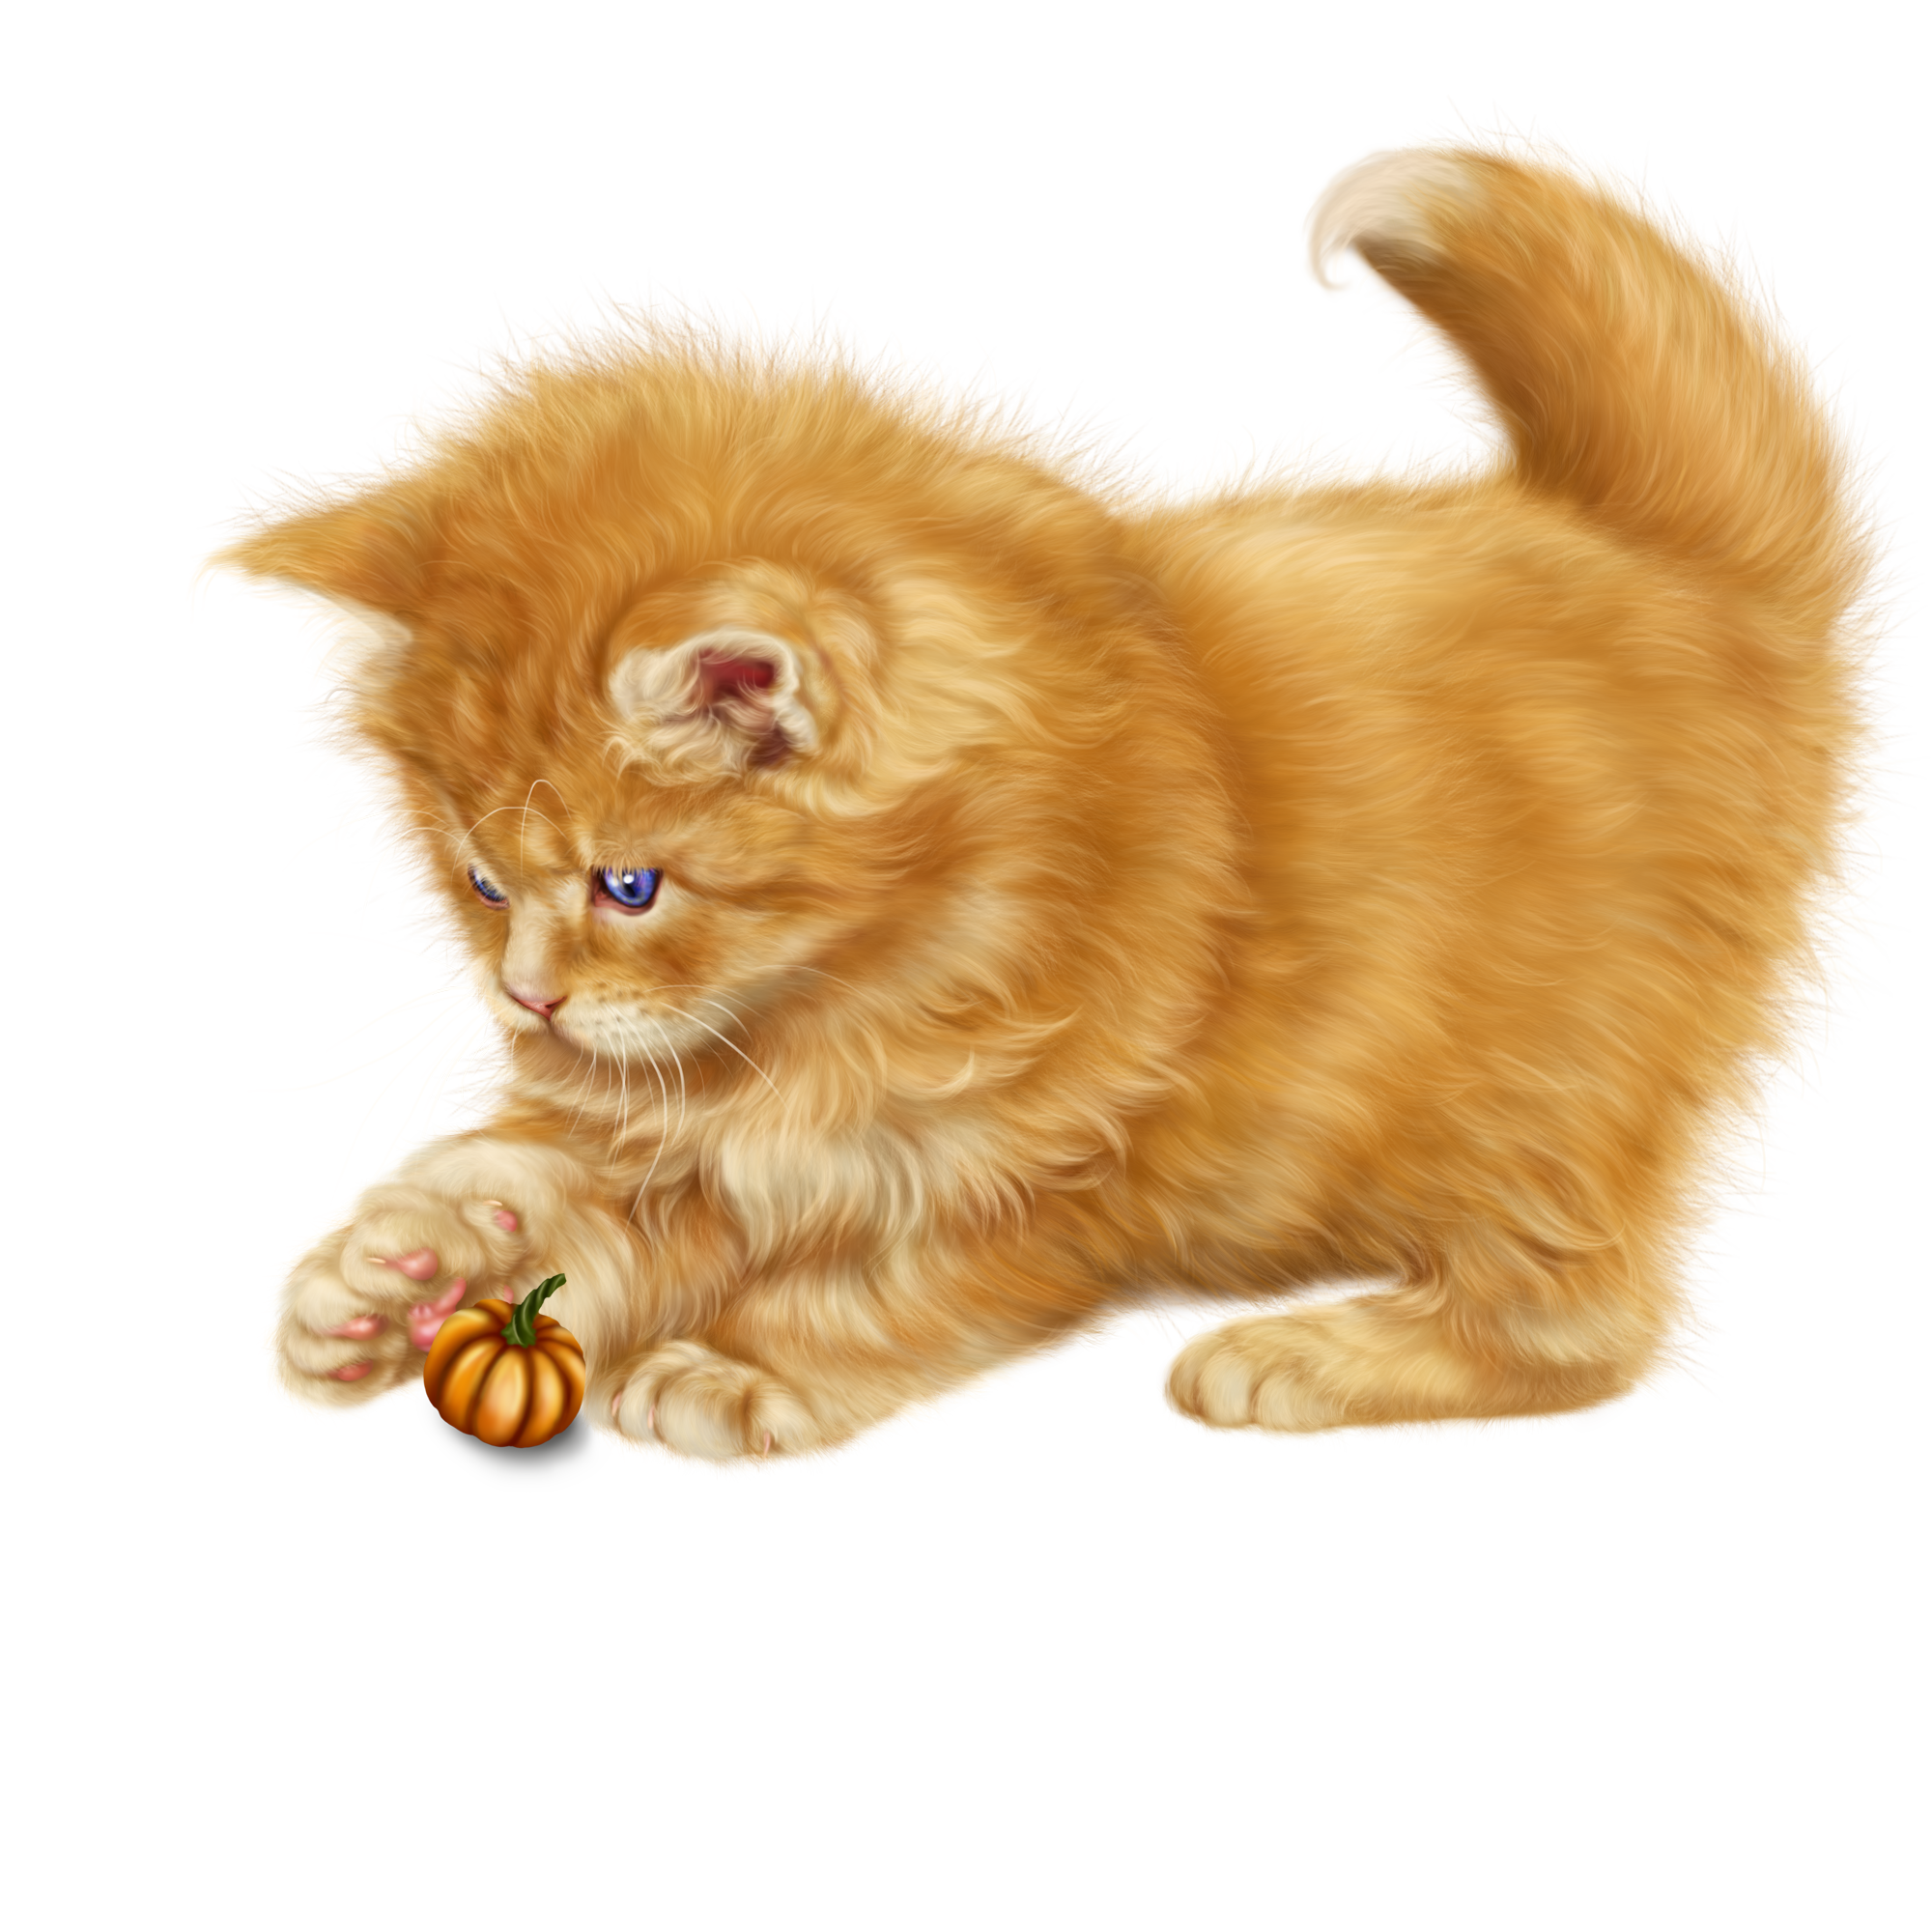 Dog and cat clipart for tshirts clip art transparent Pin by Lidia on Kot Clipart / Cat Clipart | Pinterest | Cat clipart clip art transparent